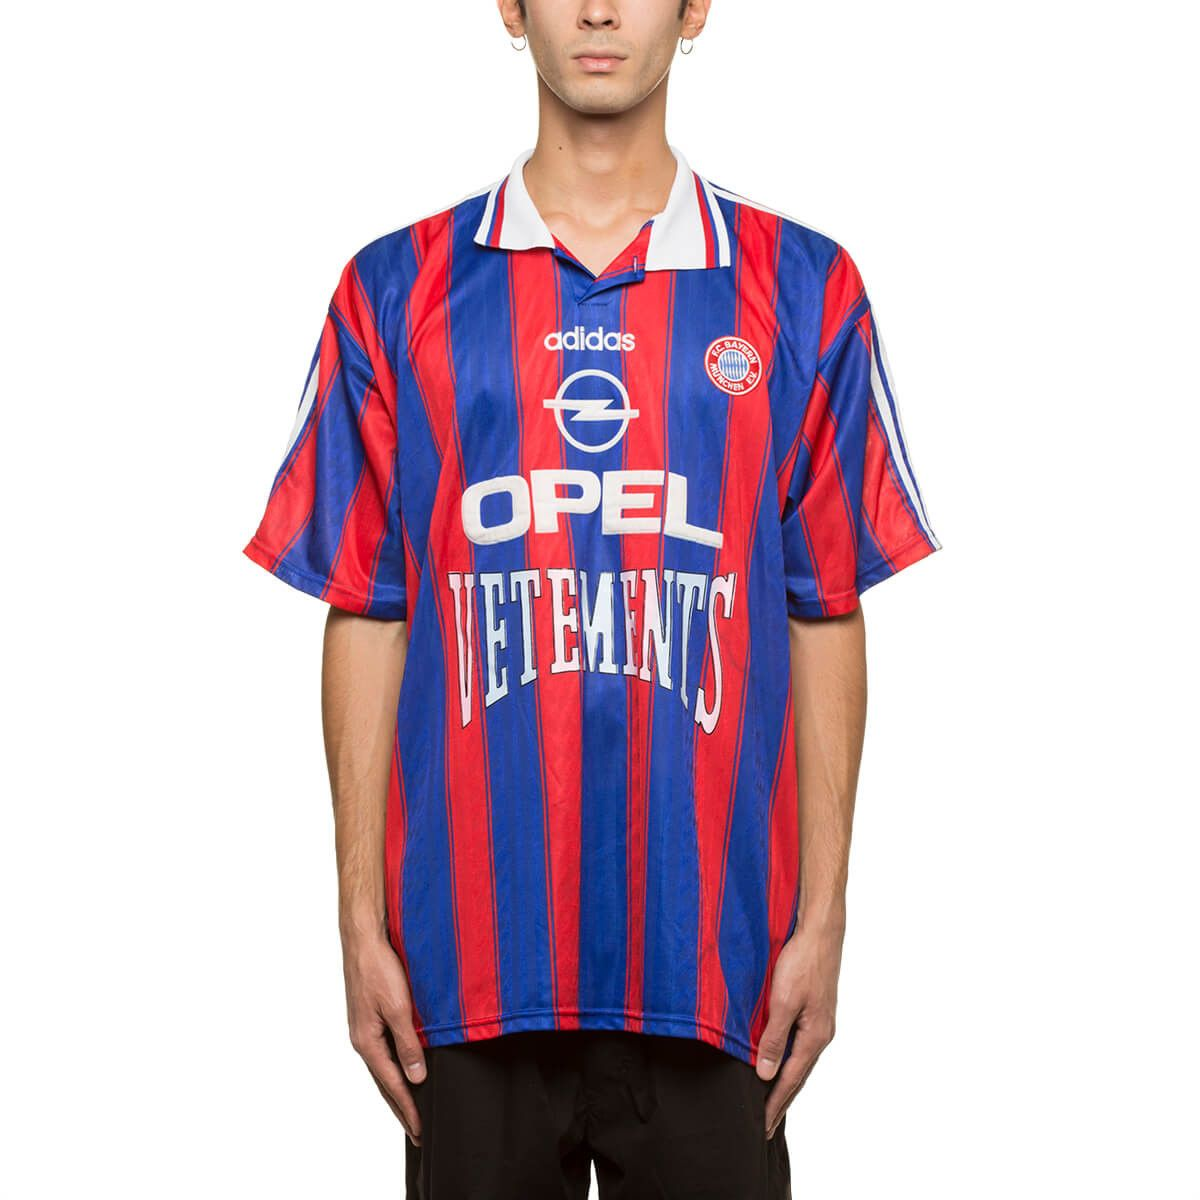 462f90a24 Vetements t-shirt from Les Vêtements de Football collection in blue and red